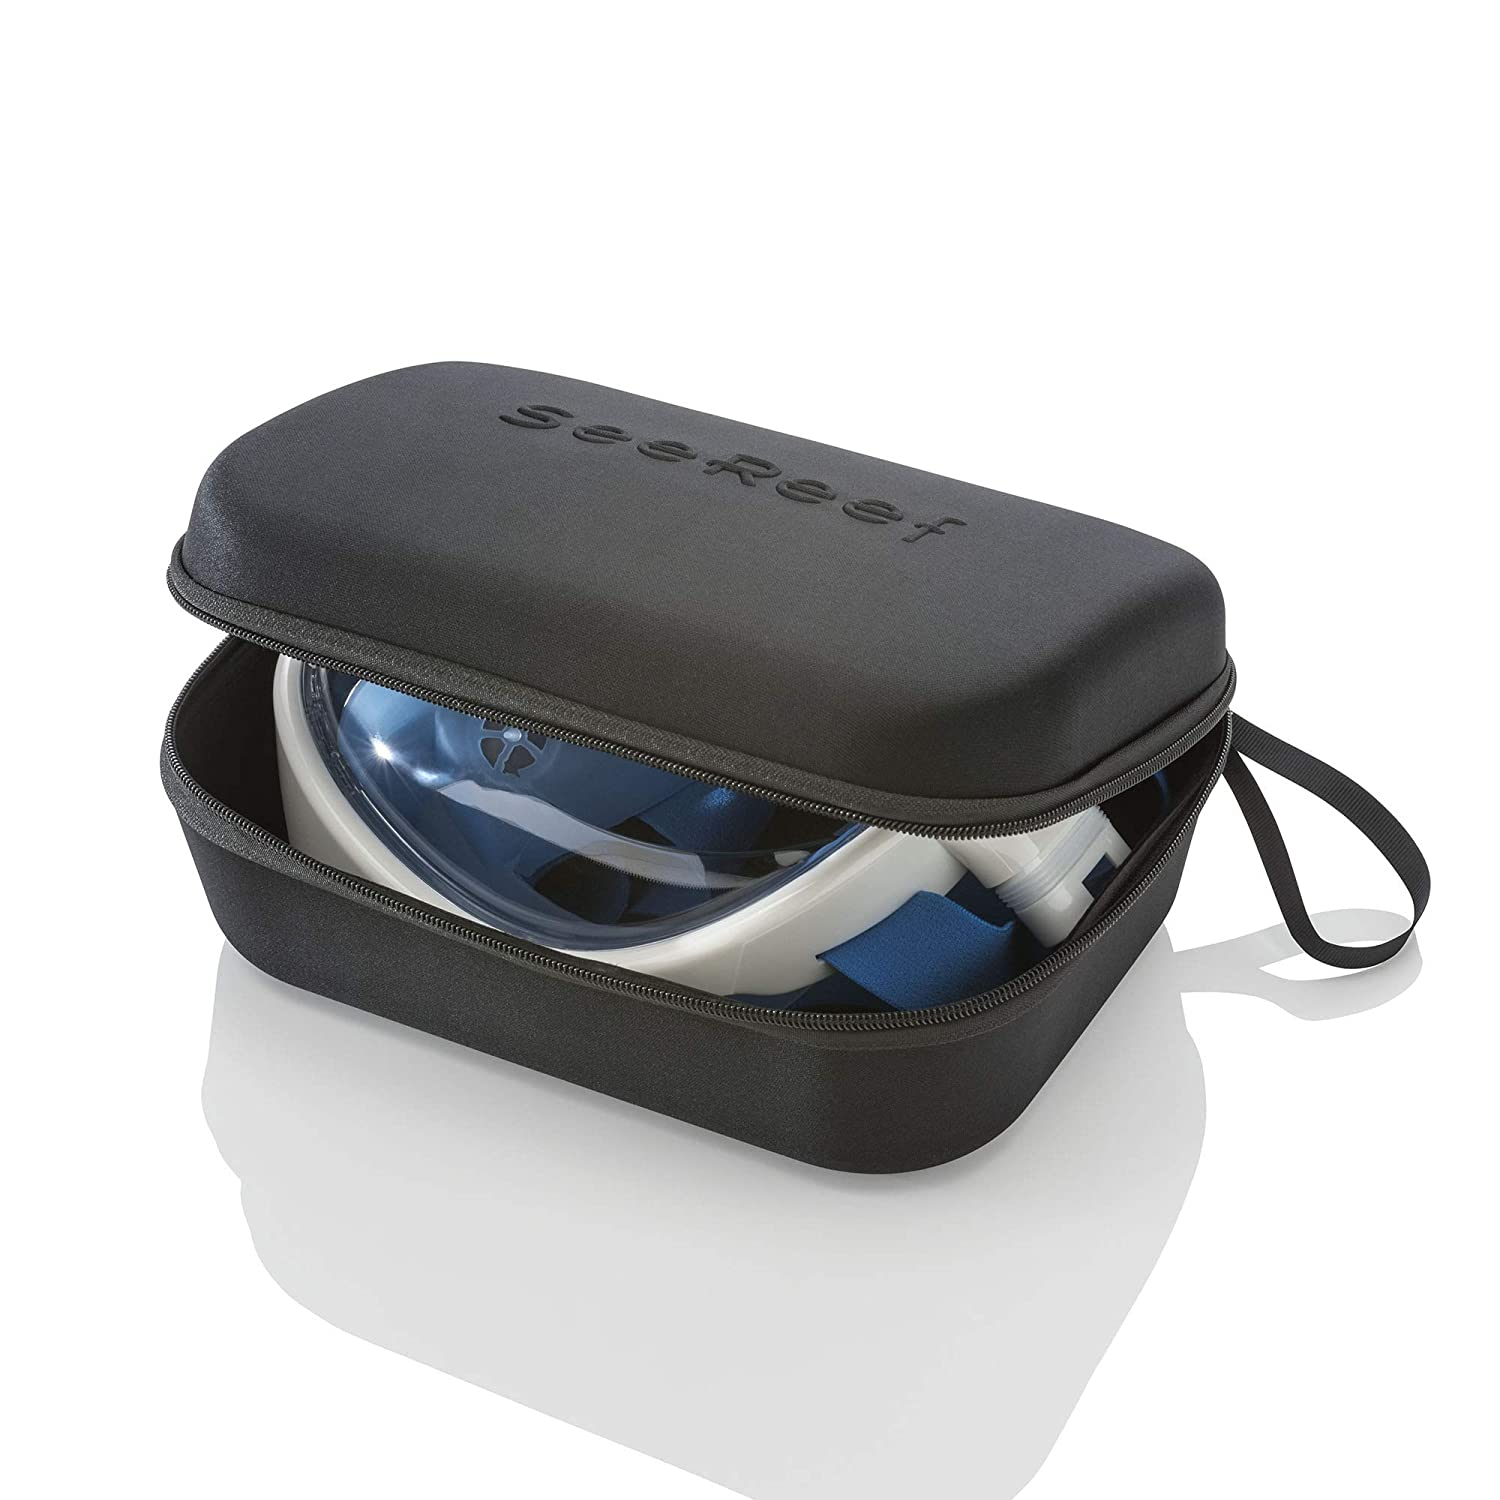 Snorkeling Mask Set New Design With Hard Carry Case See 180 Degrees Underwater with New 4 Valve Anti Fog Technology Breathe Easy SeeReef Full Face Snorkel